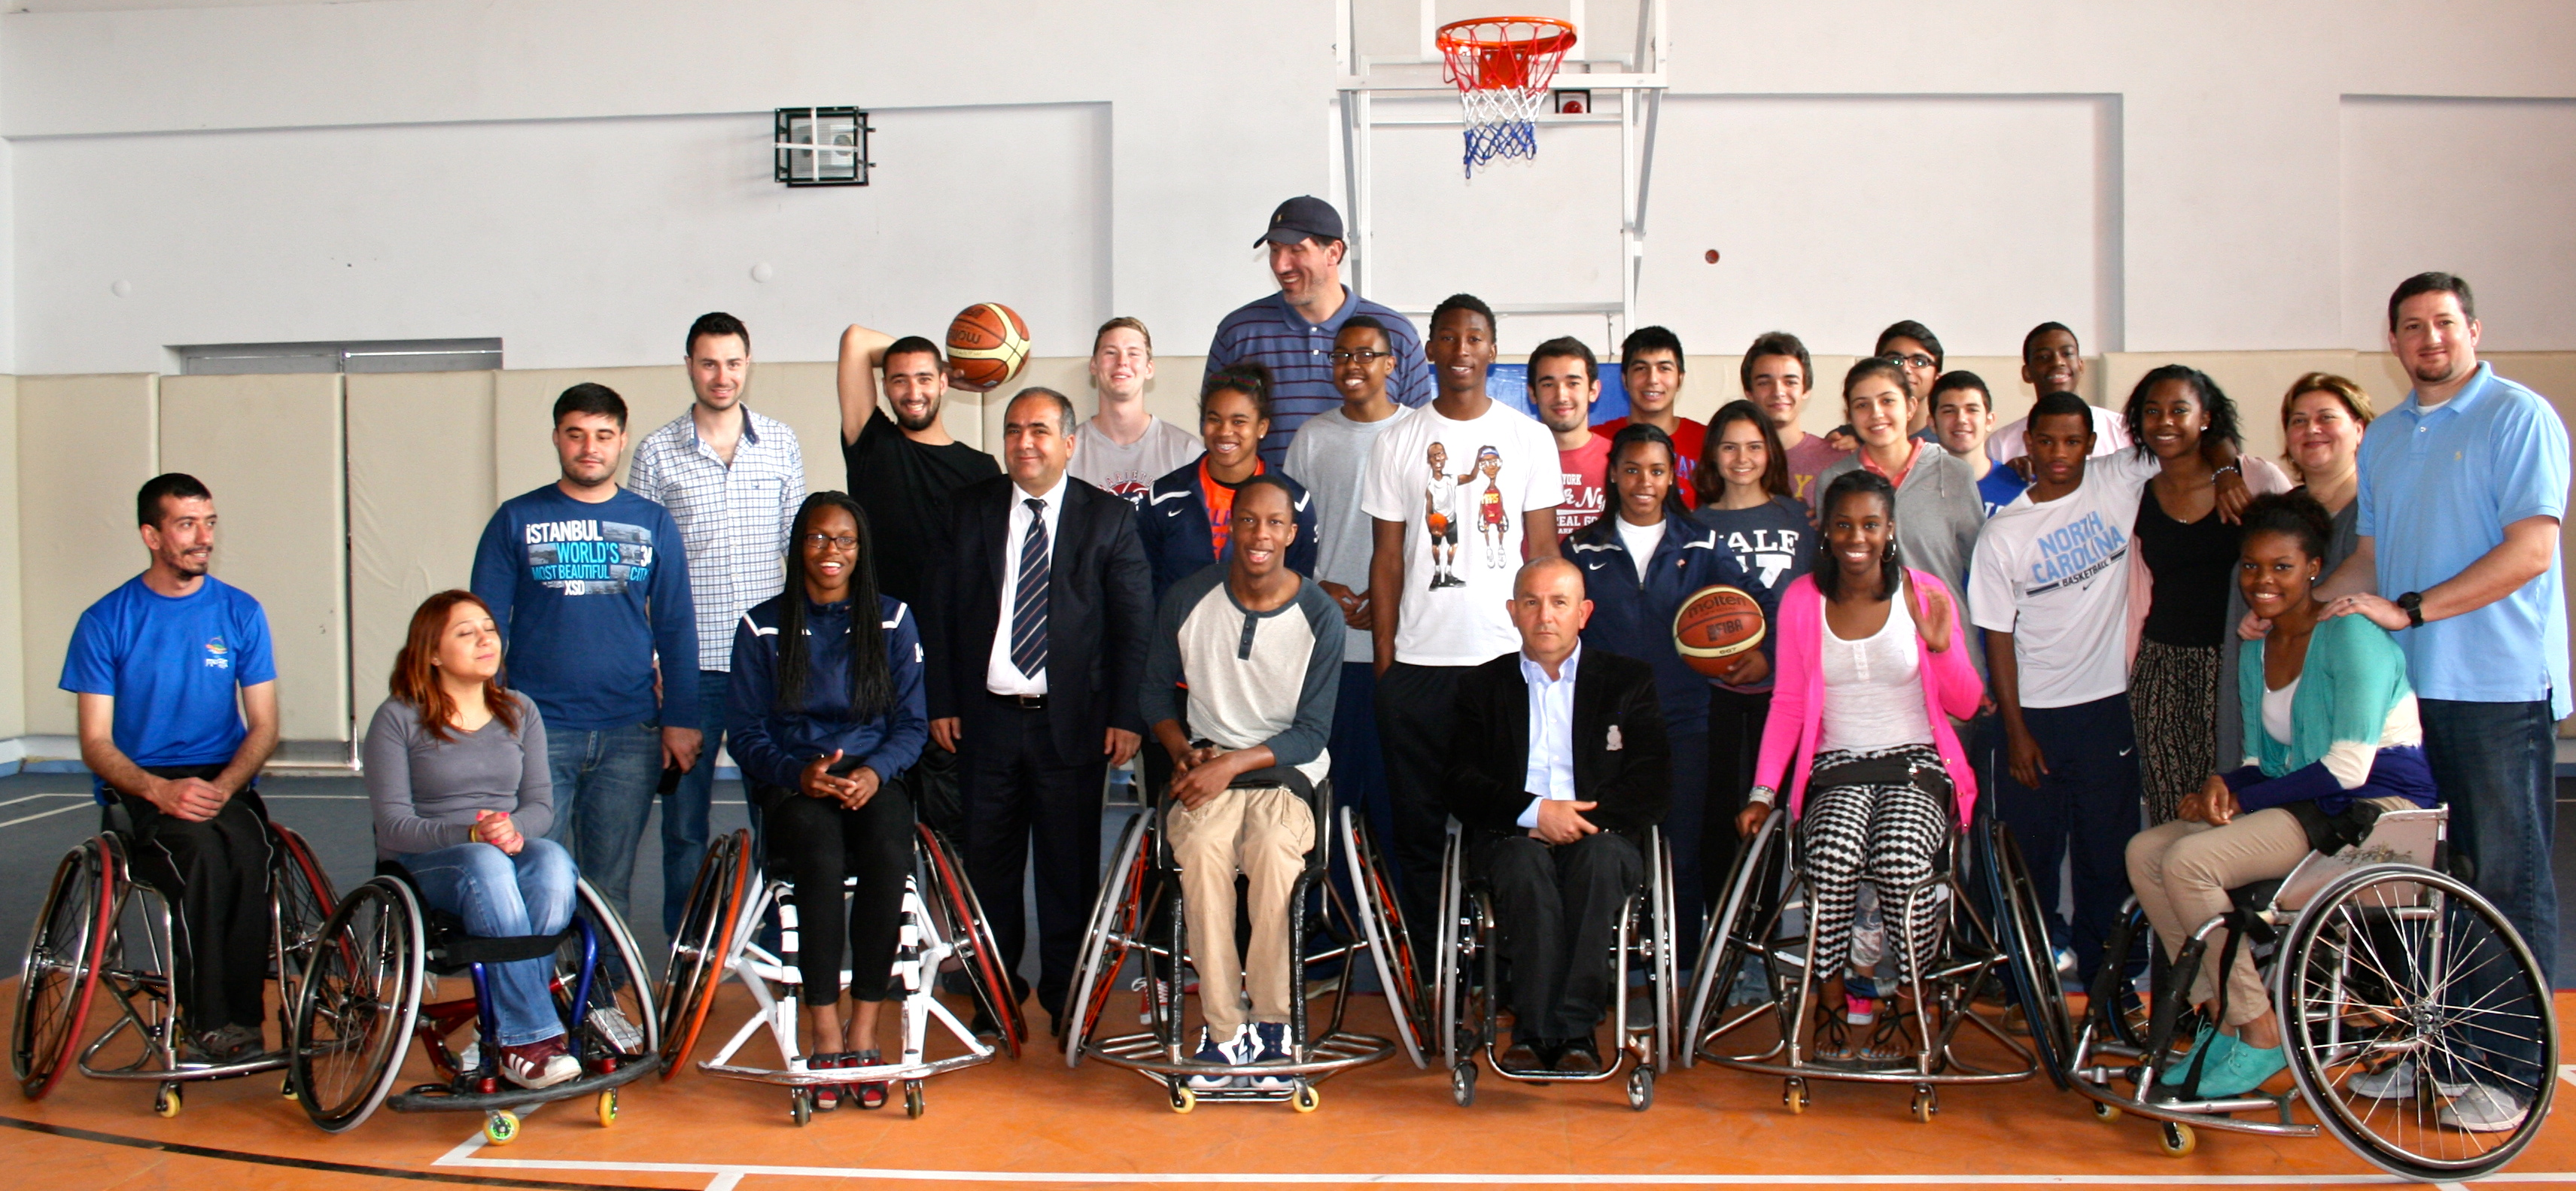 In Adana, the SportsUnited group practiced with and talked to basketball players with disabilities, with the goal of increasing the students' awareness of the challenges they face and their determination to overcome them